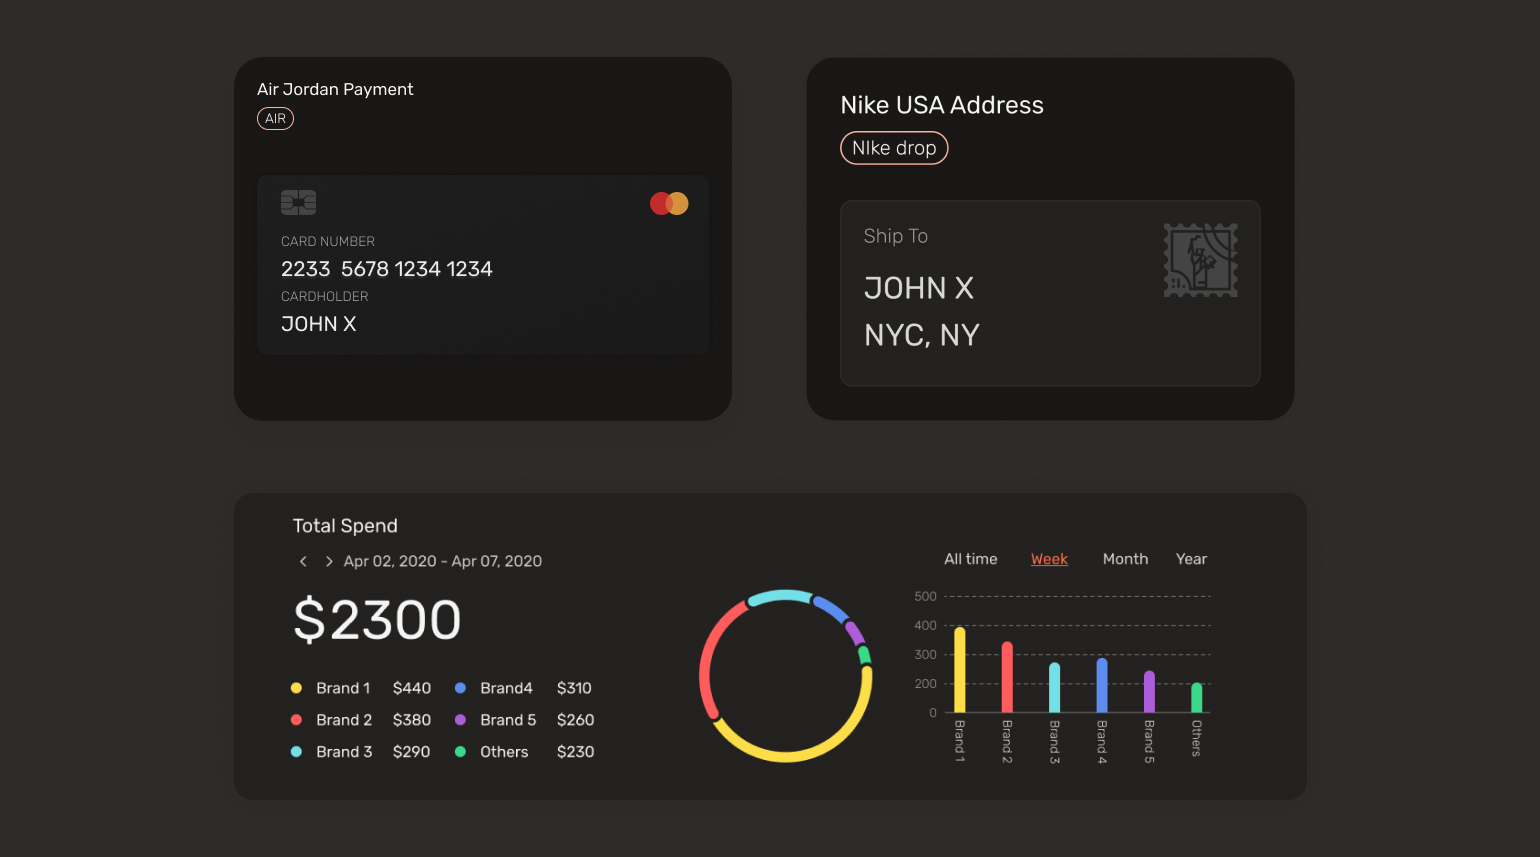 UI components for managing credit card information and data visualization of your spending.